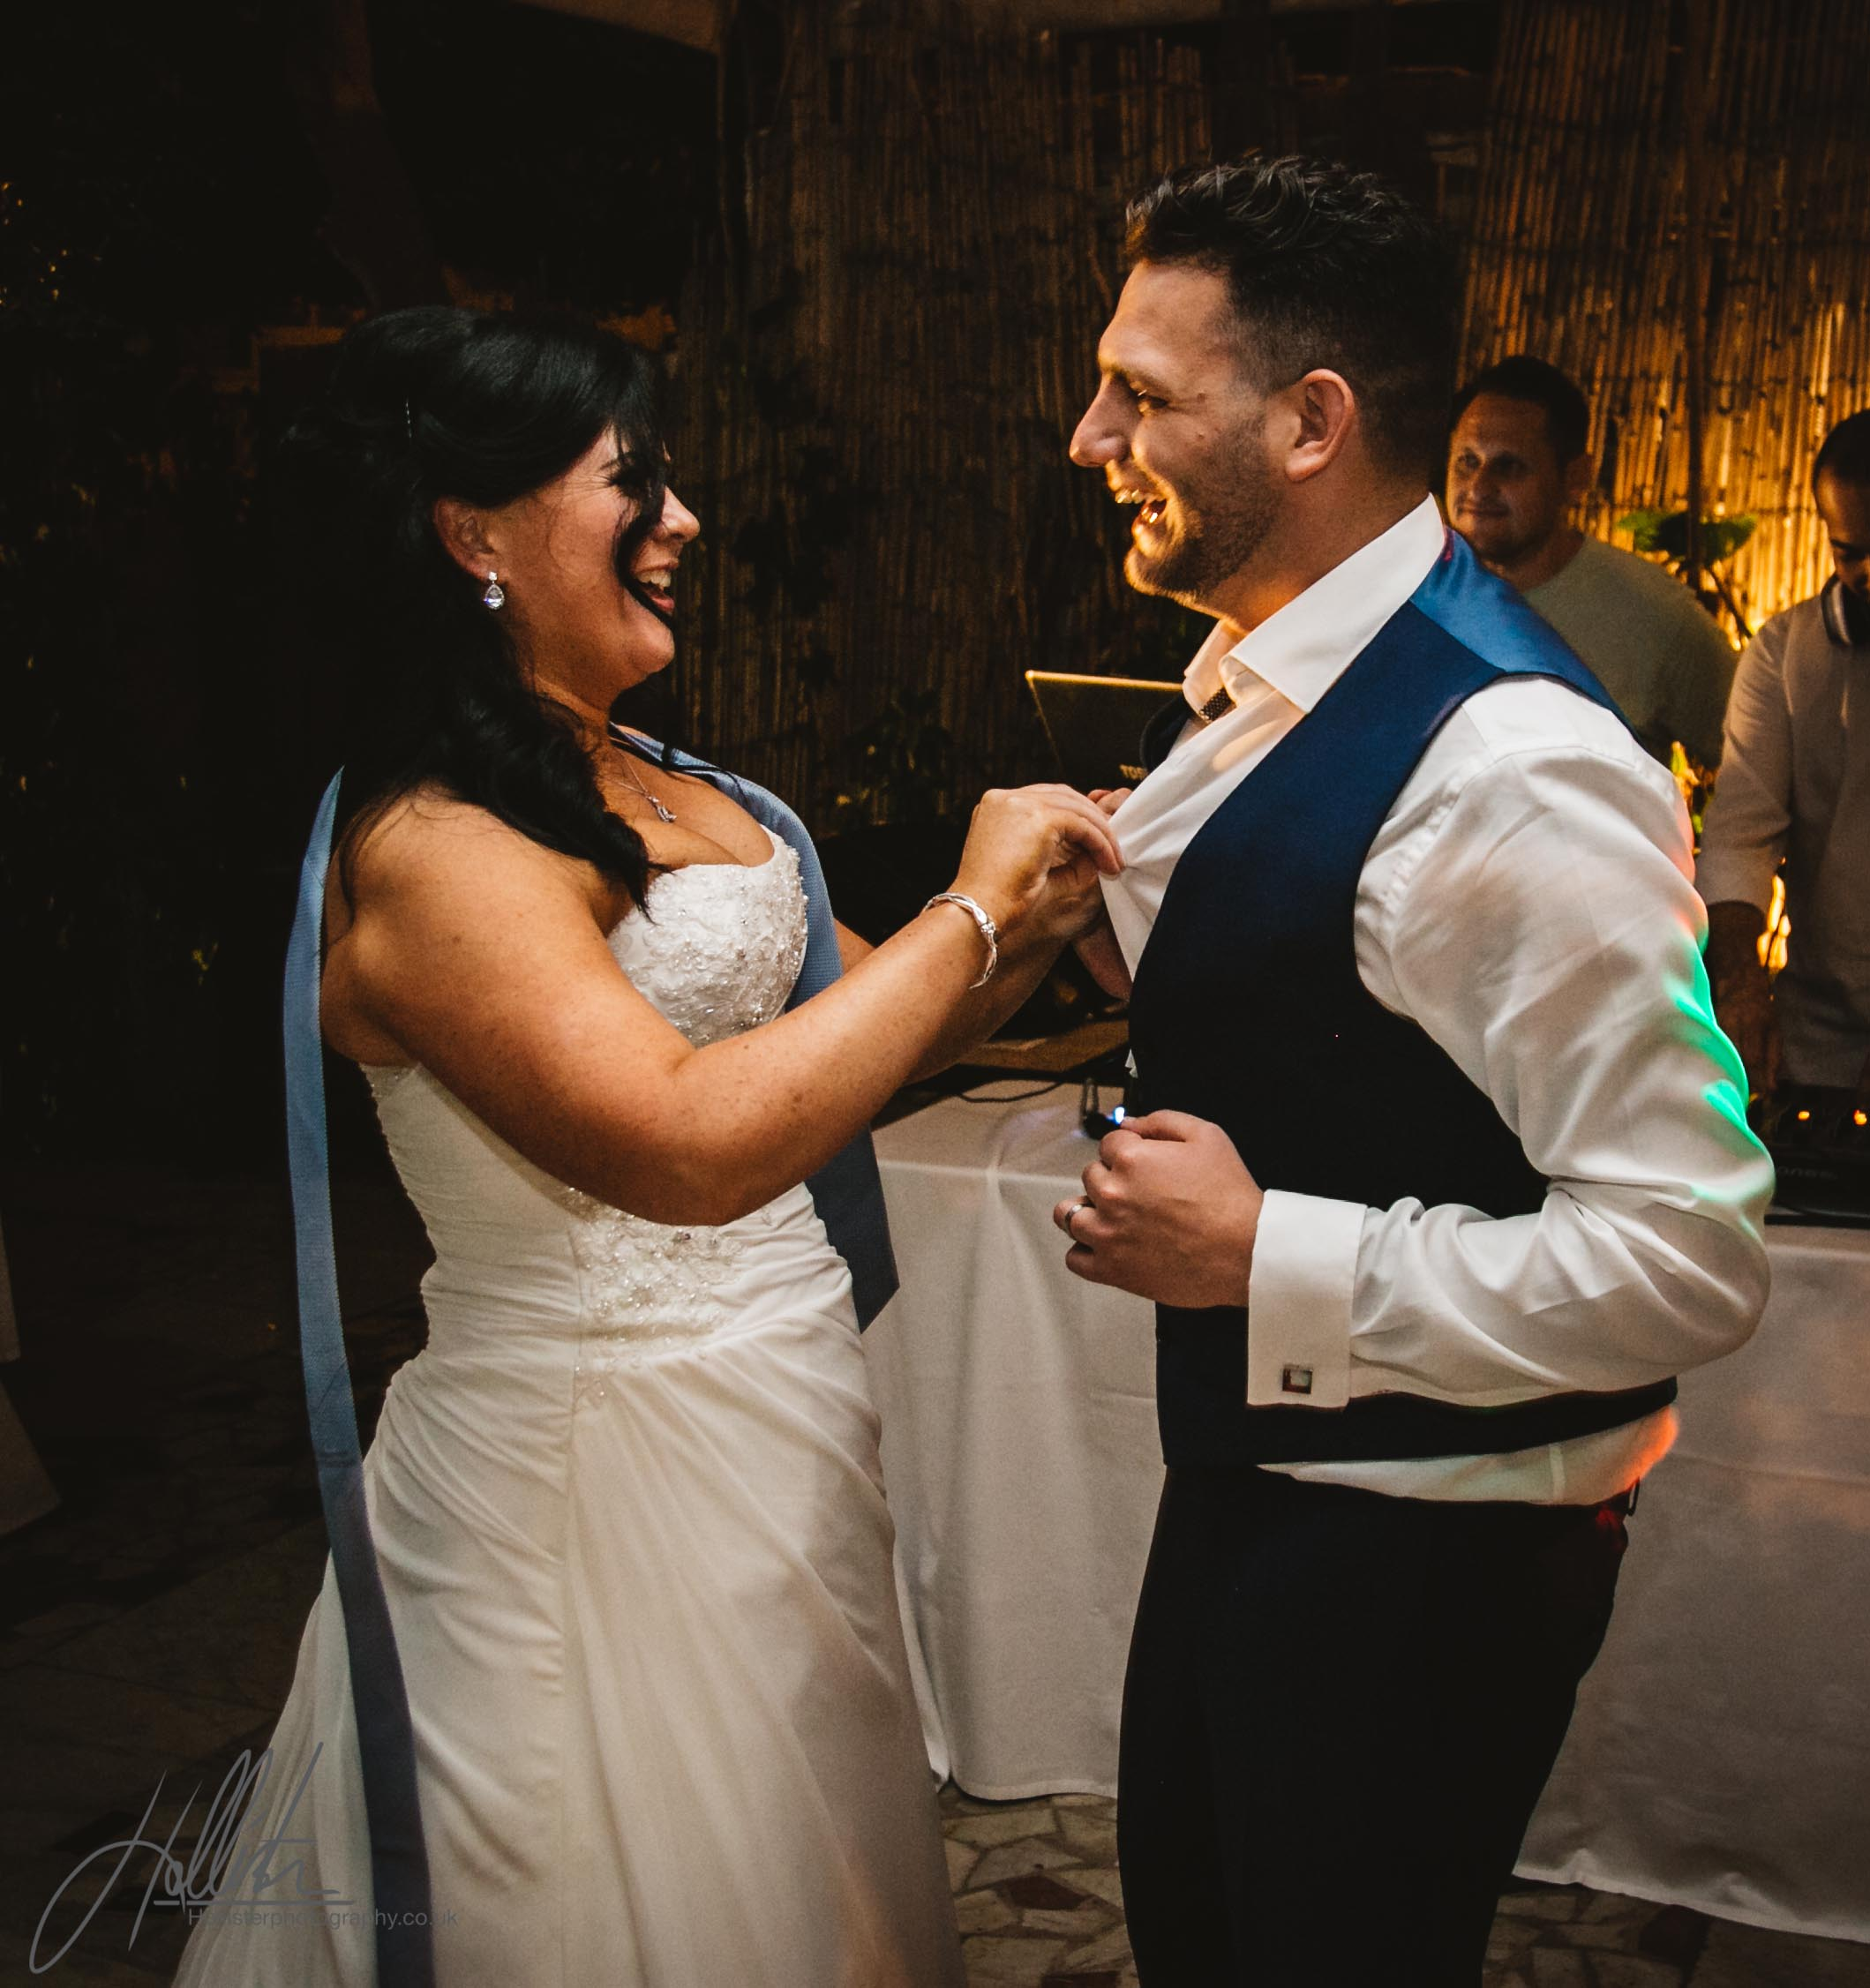 Stu and Firons Gibraltan Wedding june 6th 2015  WATERMARKED-17.jpg